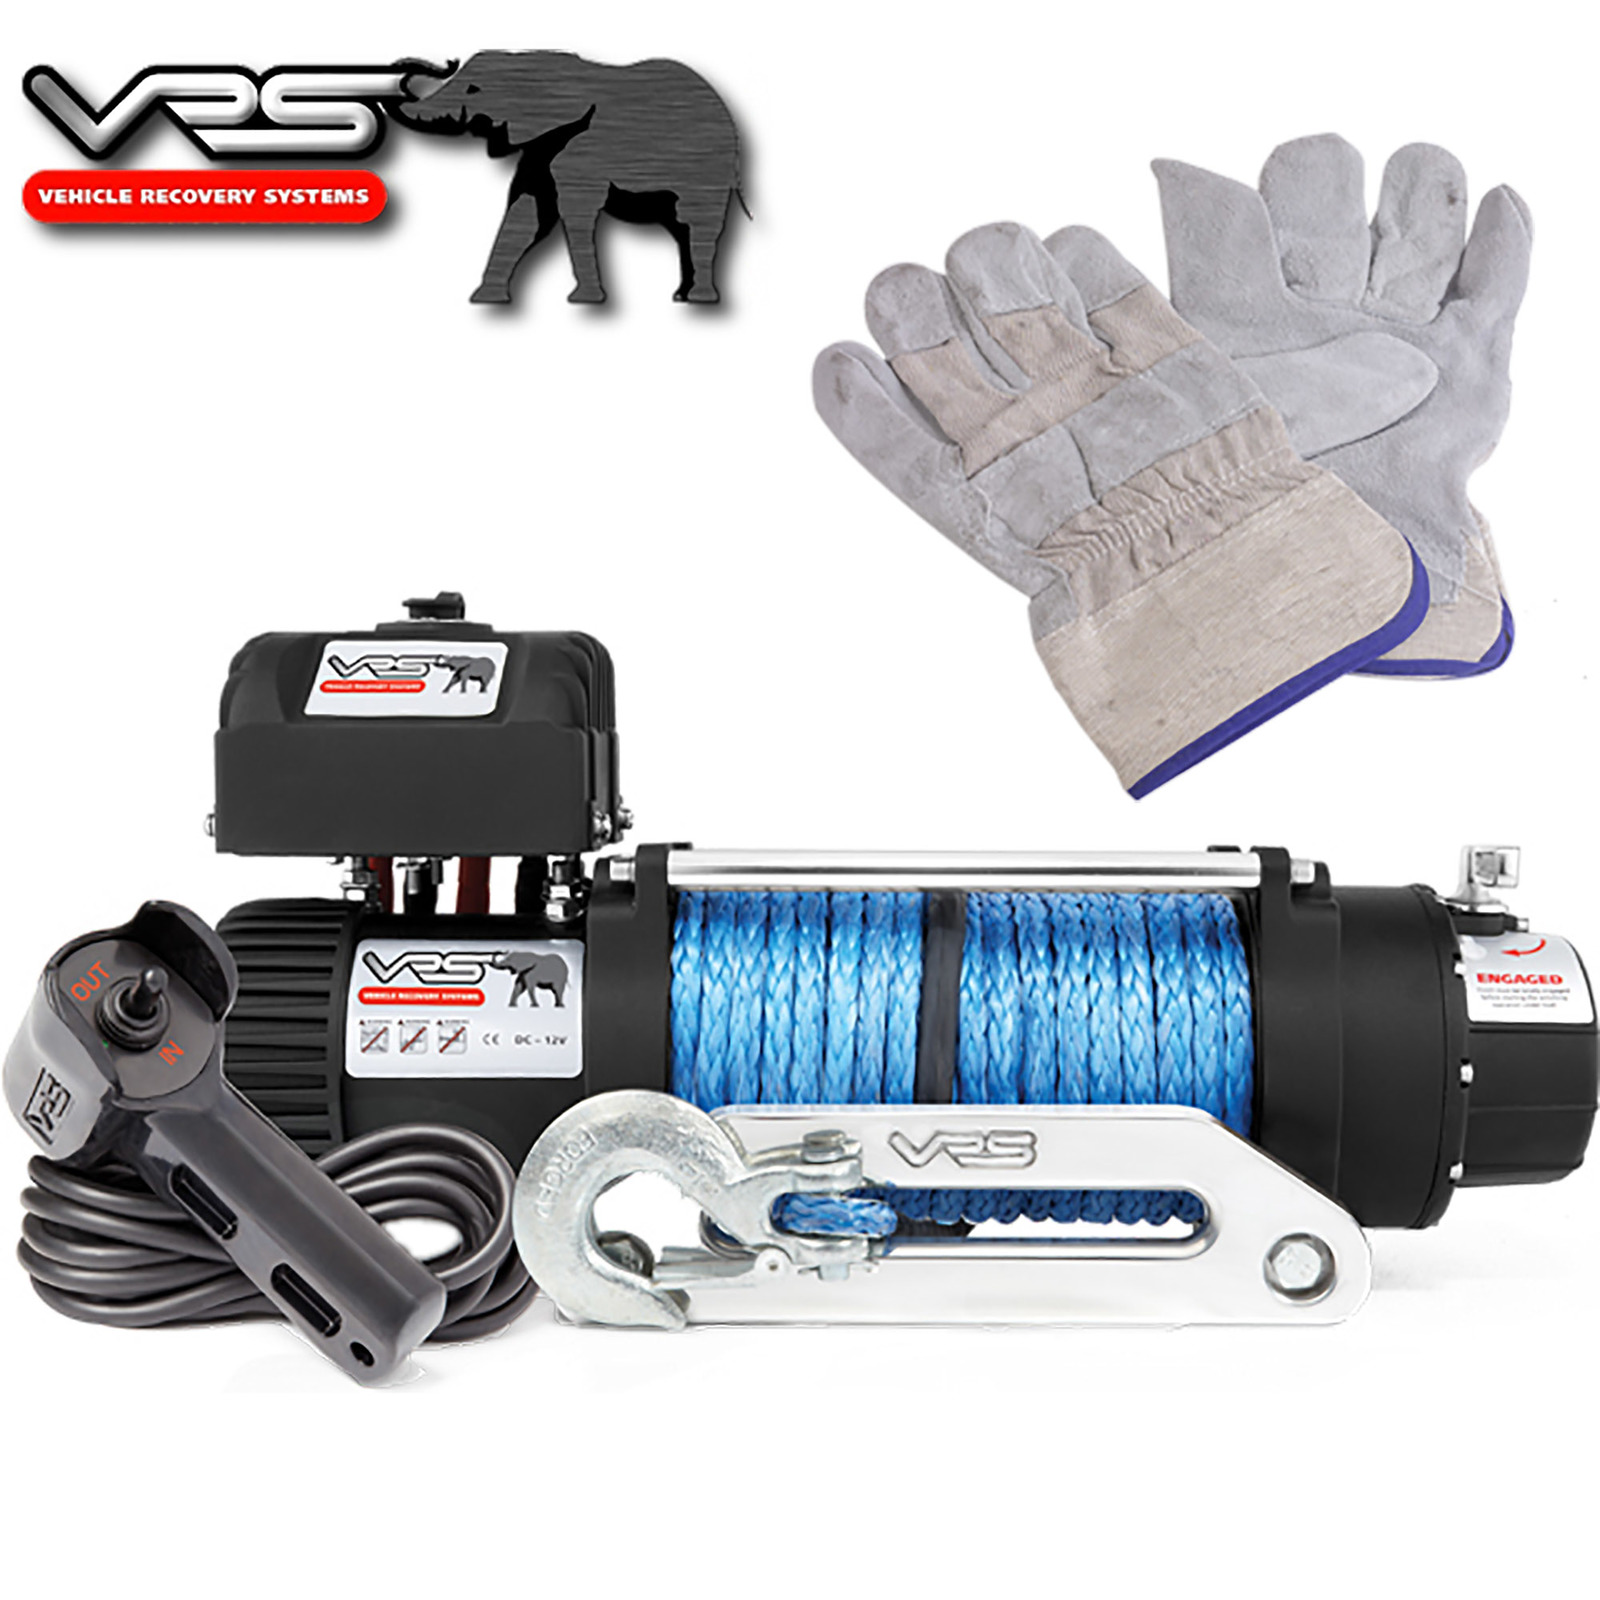 ironman winch wiring diagram parts of a flower ks2 vrs synthetic rope monster 12500lb 43 gloves